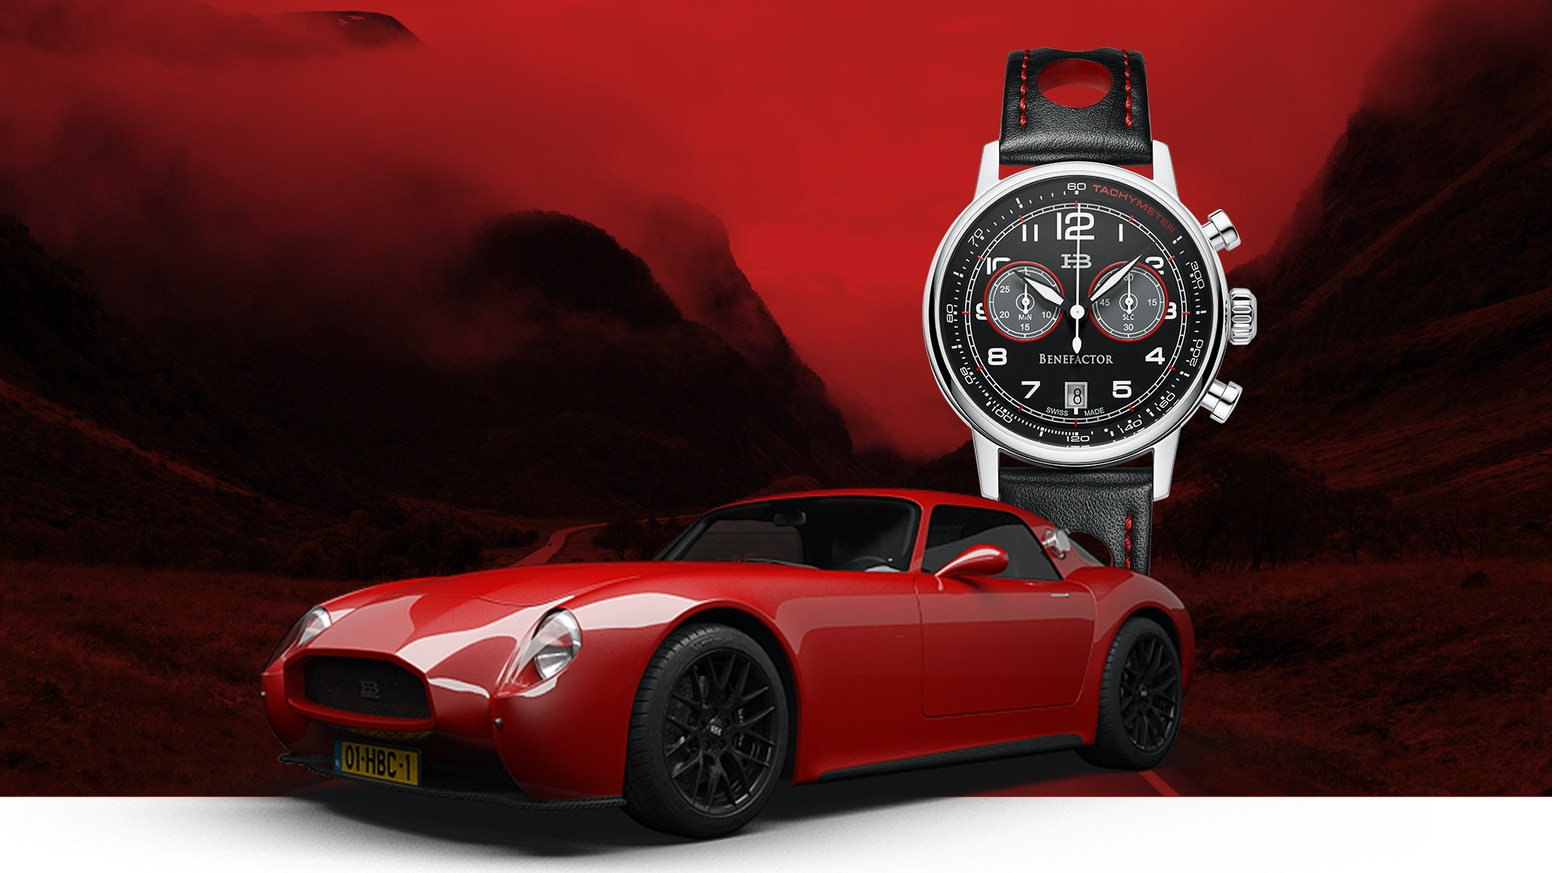 Get this LIMITED EDITION and be part of a boutique sports car manufacturer in the making!